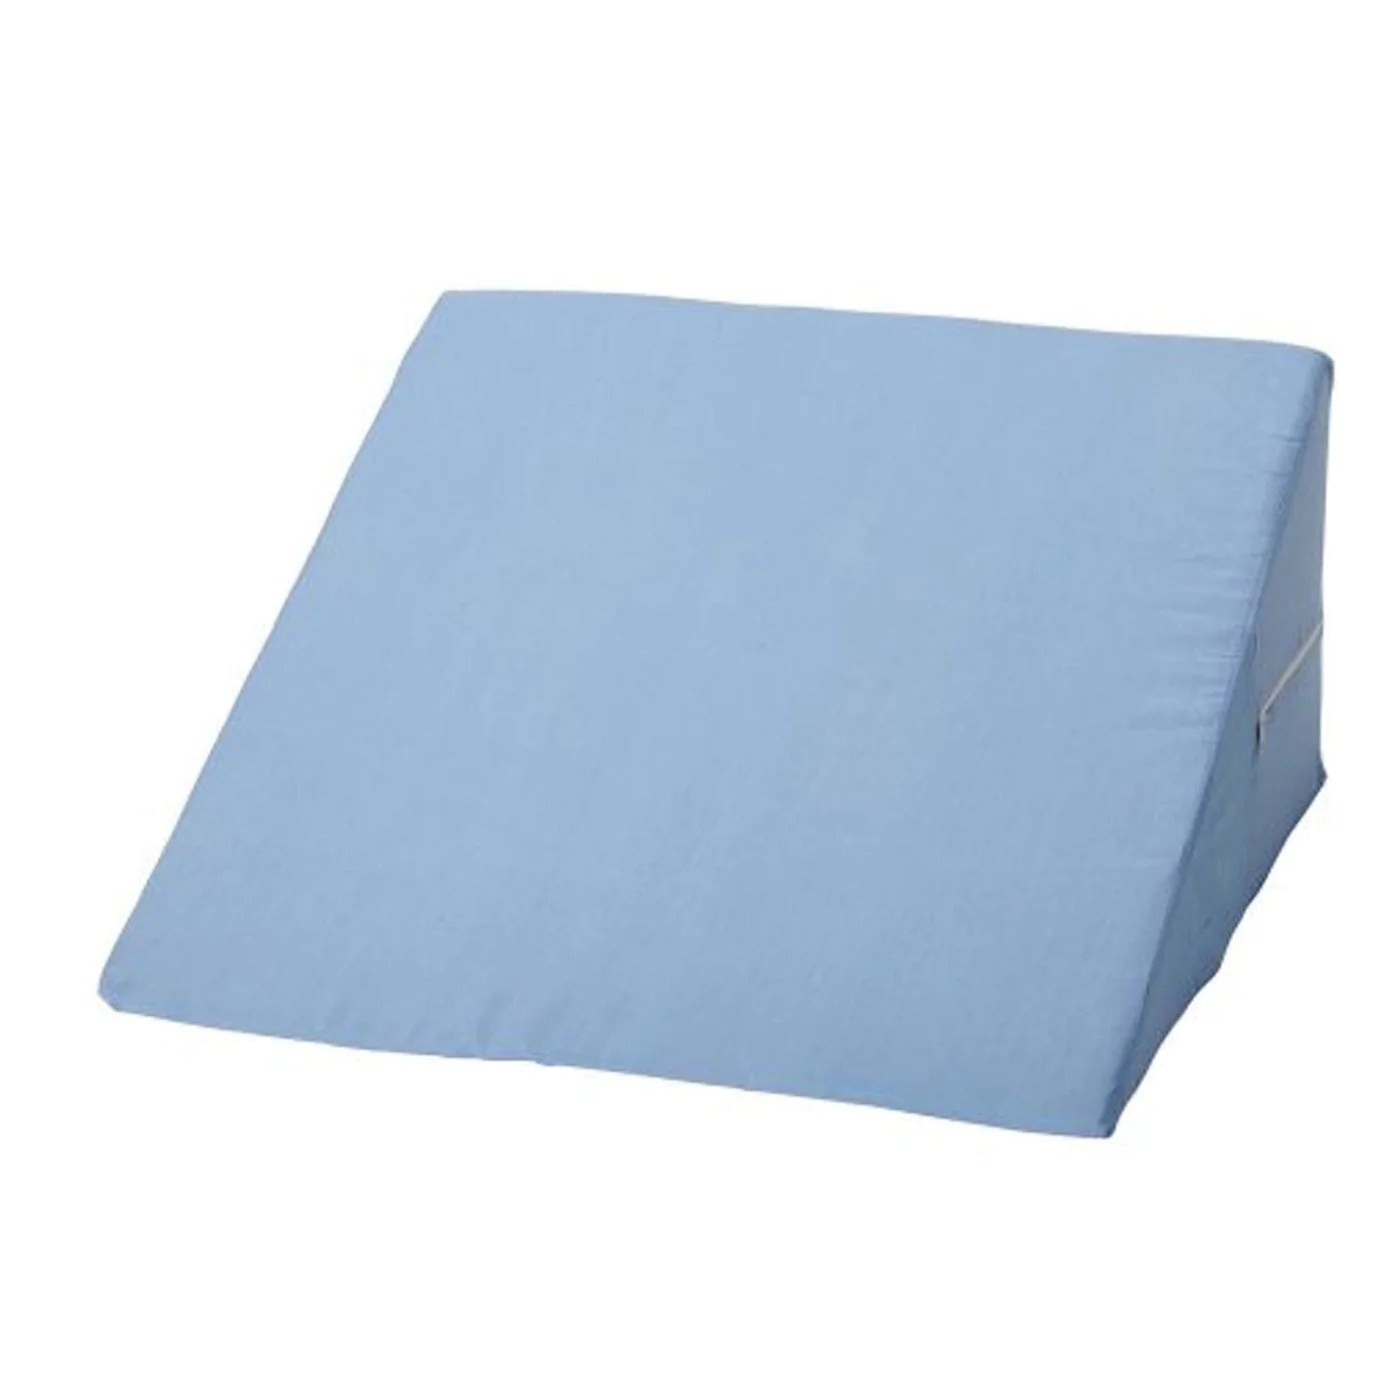 foam bed wedge pillow 10 height by